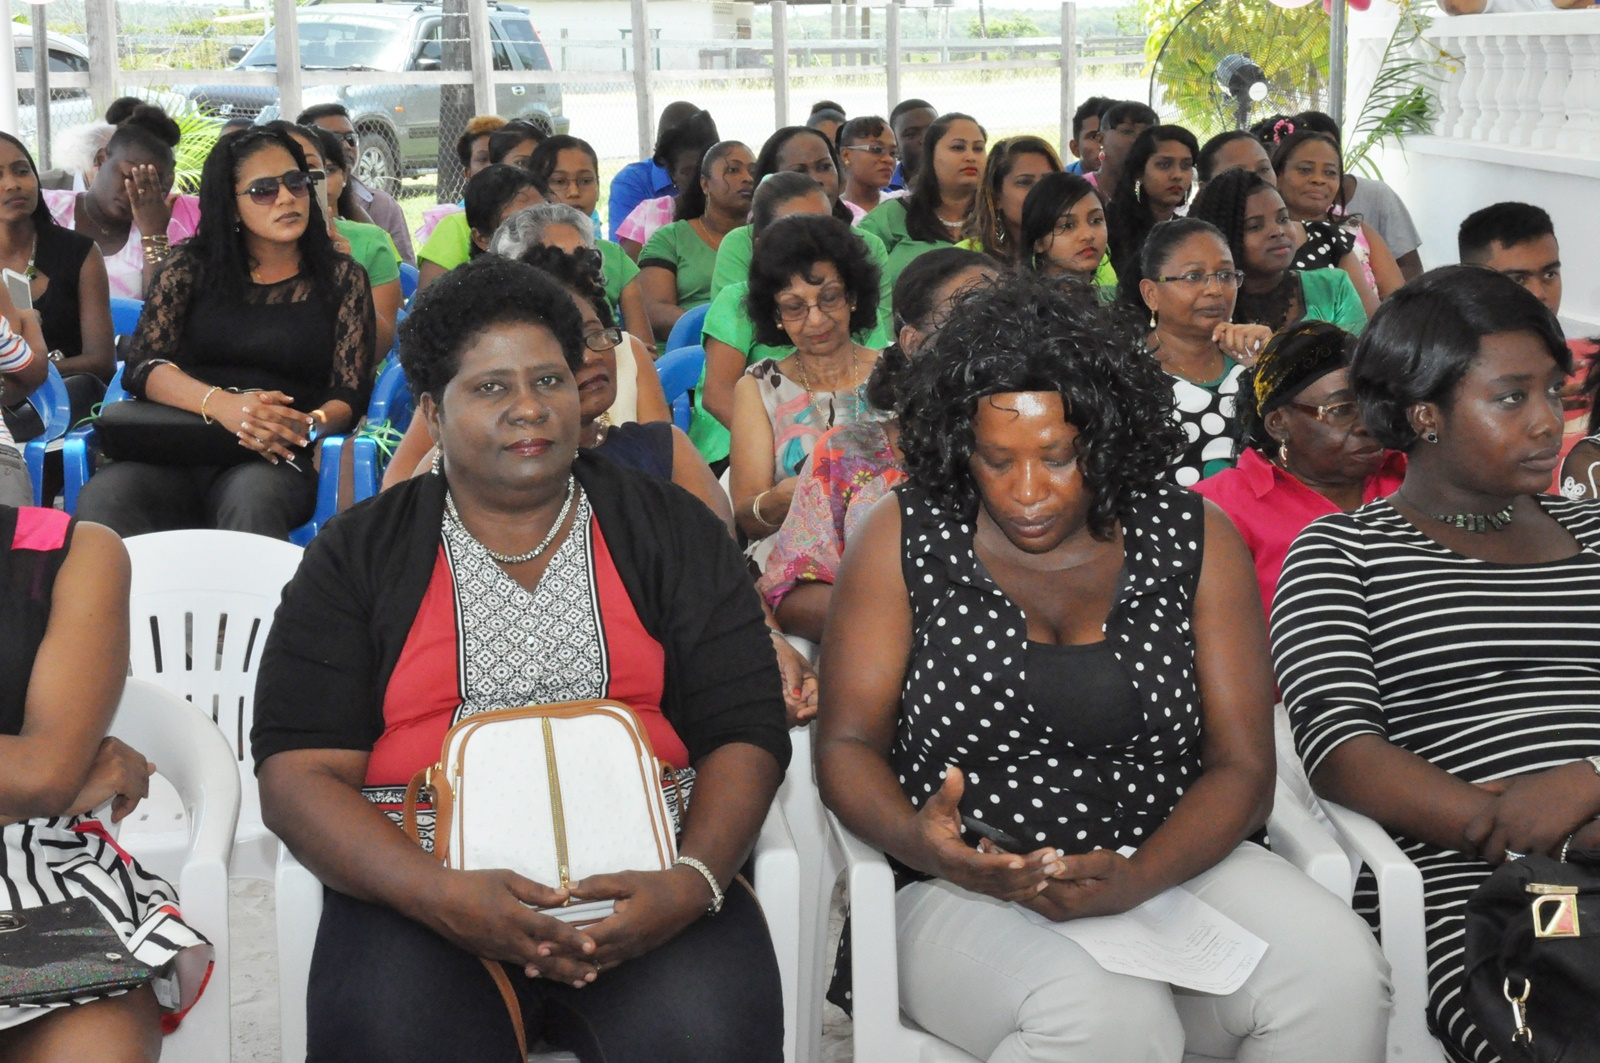 A section of the audience at the graduation ceremony.